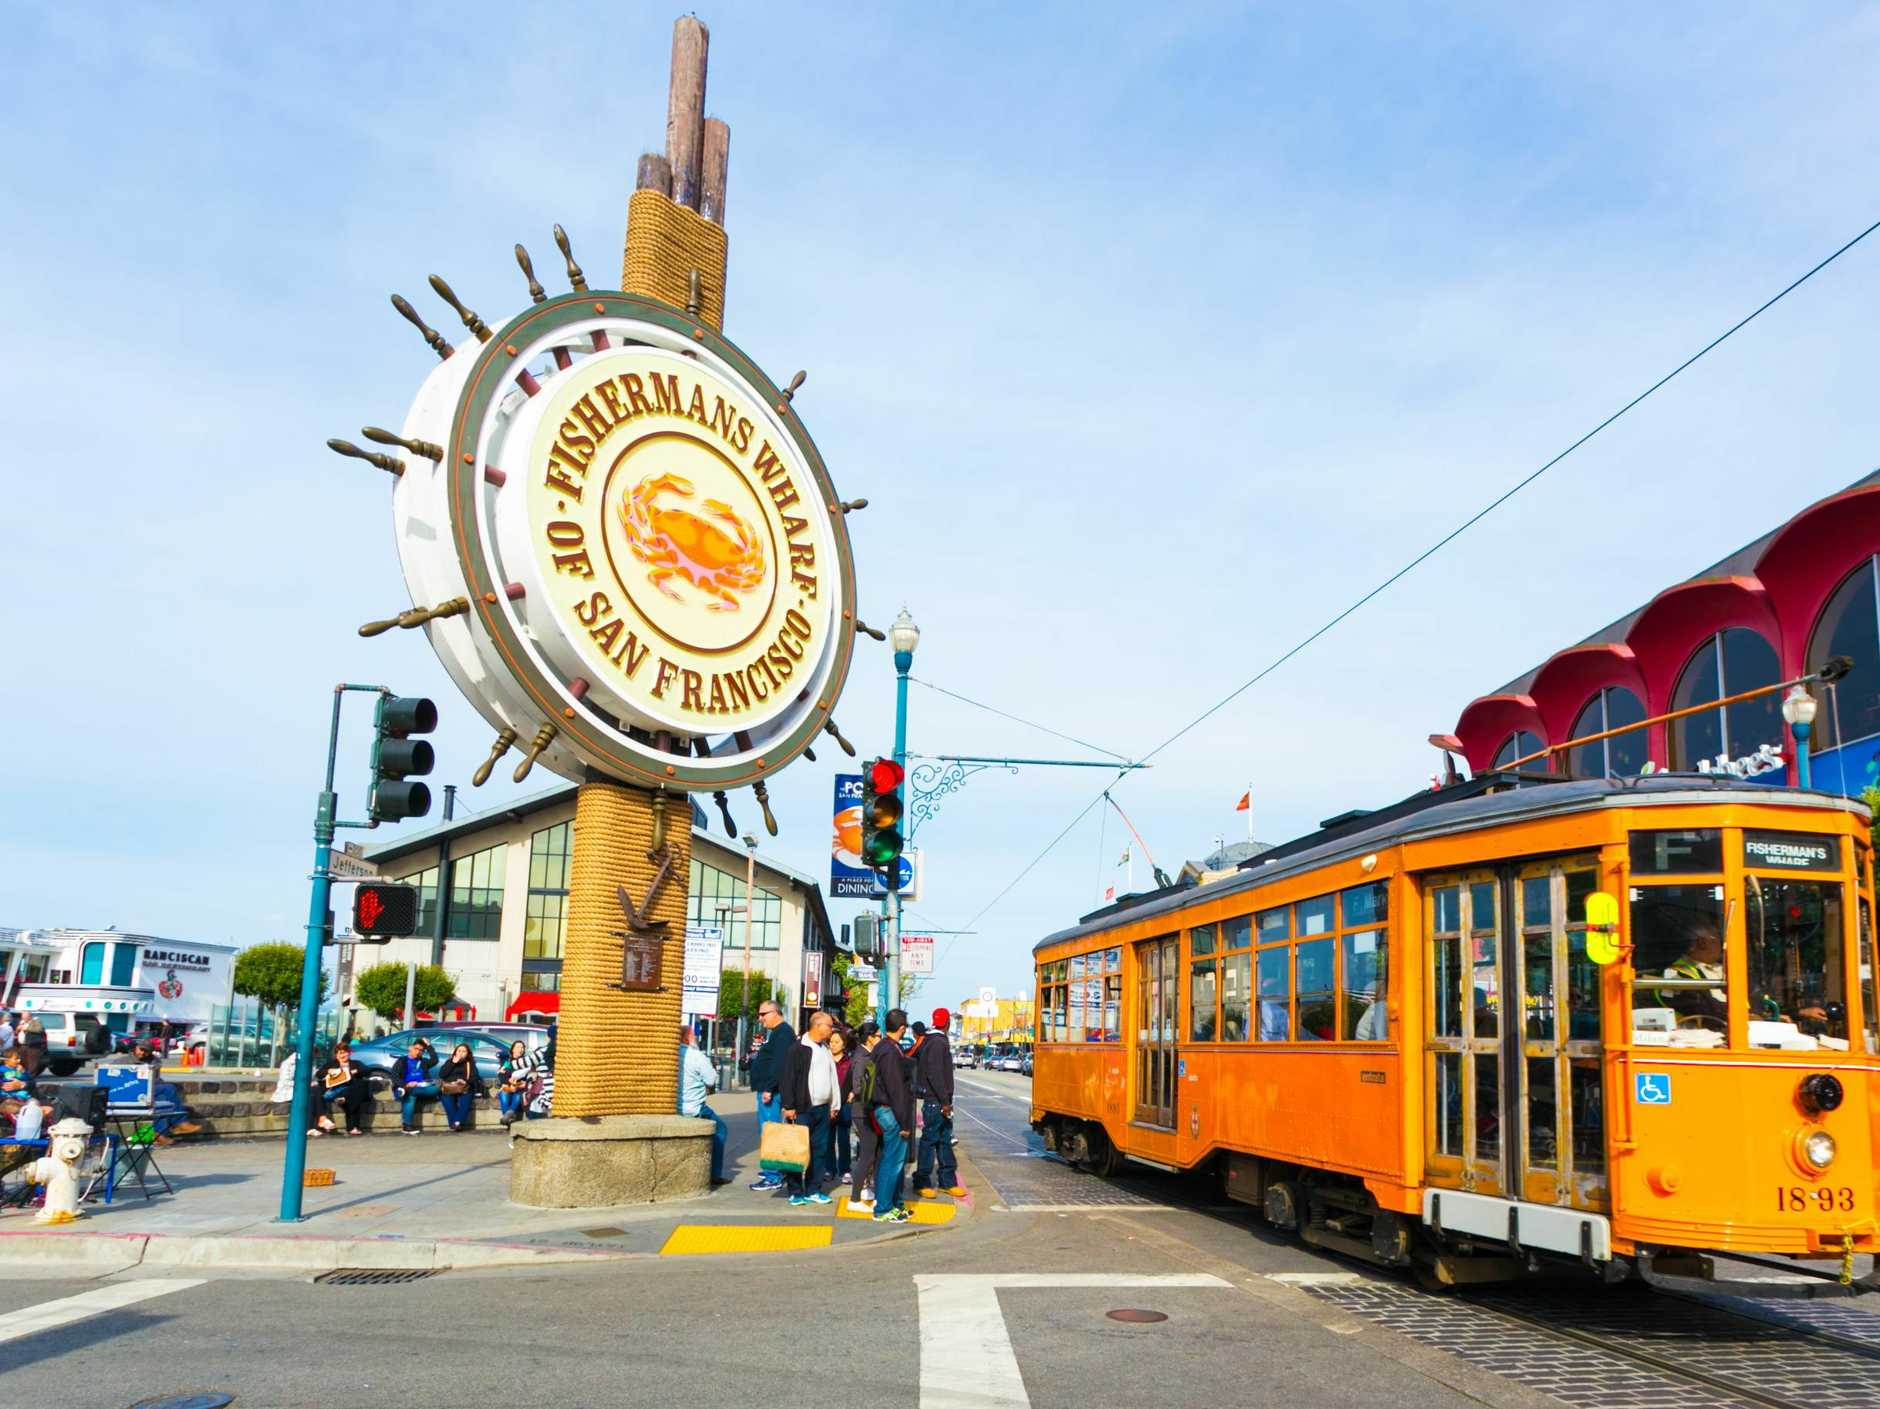 San Francisco, United States - May 5, 2016: Orange vintage Swiss F Market streetcar rolls by large sign at entrance to the tourist attraction of Fisherman's Wharf on the corner of Beach and Jones Street. Horizontal